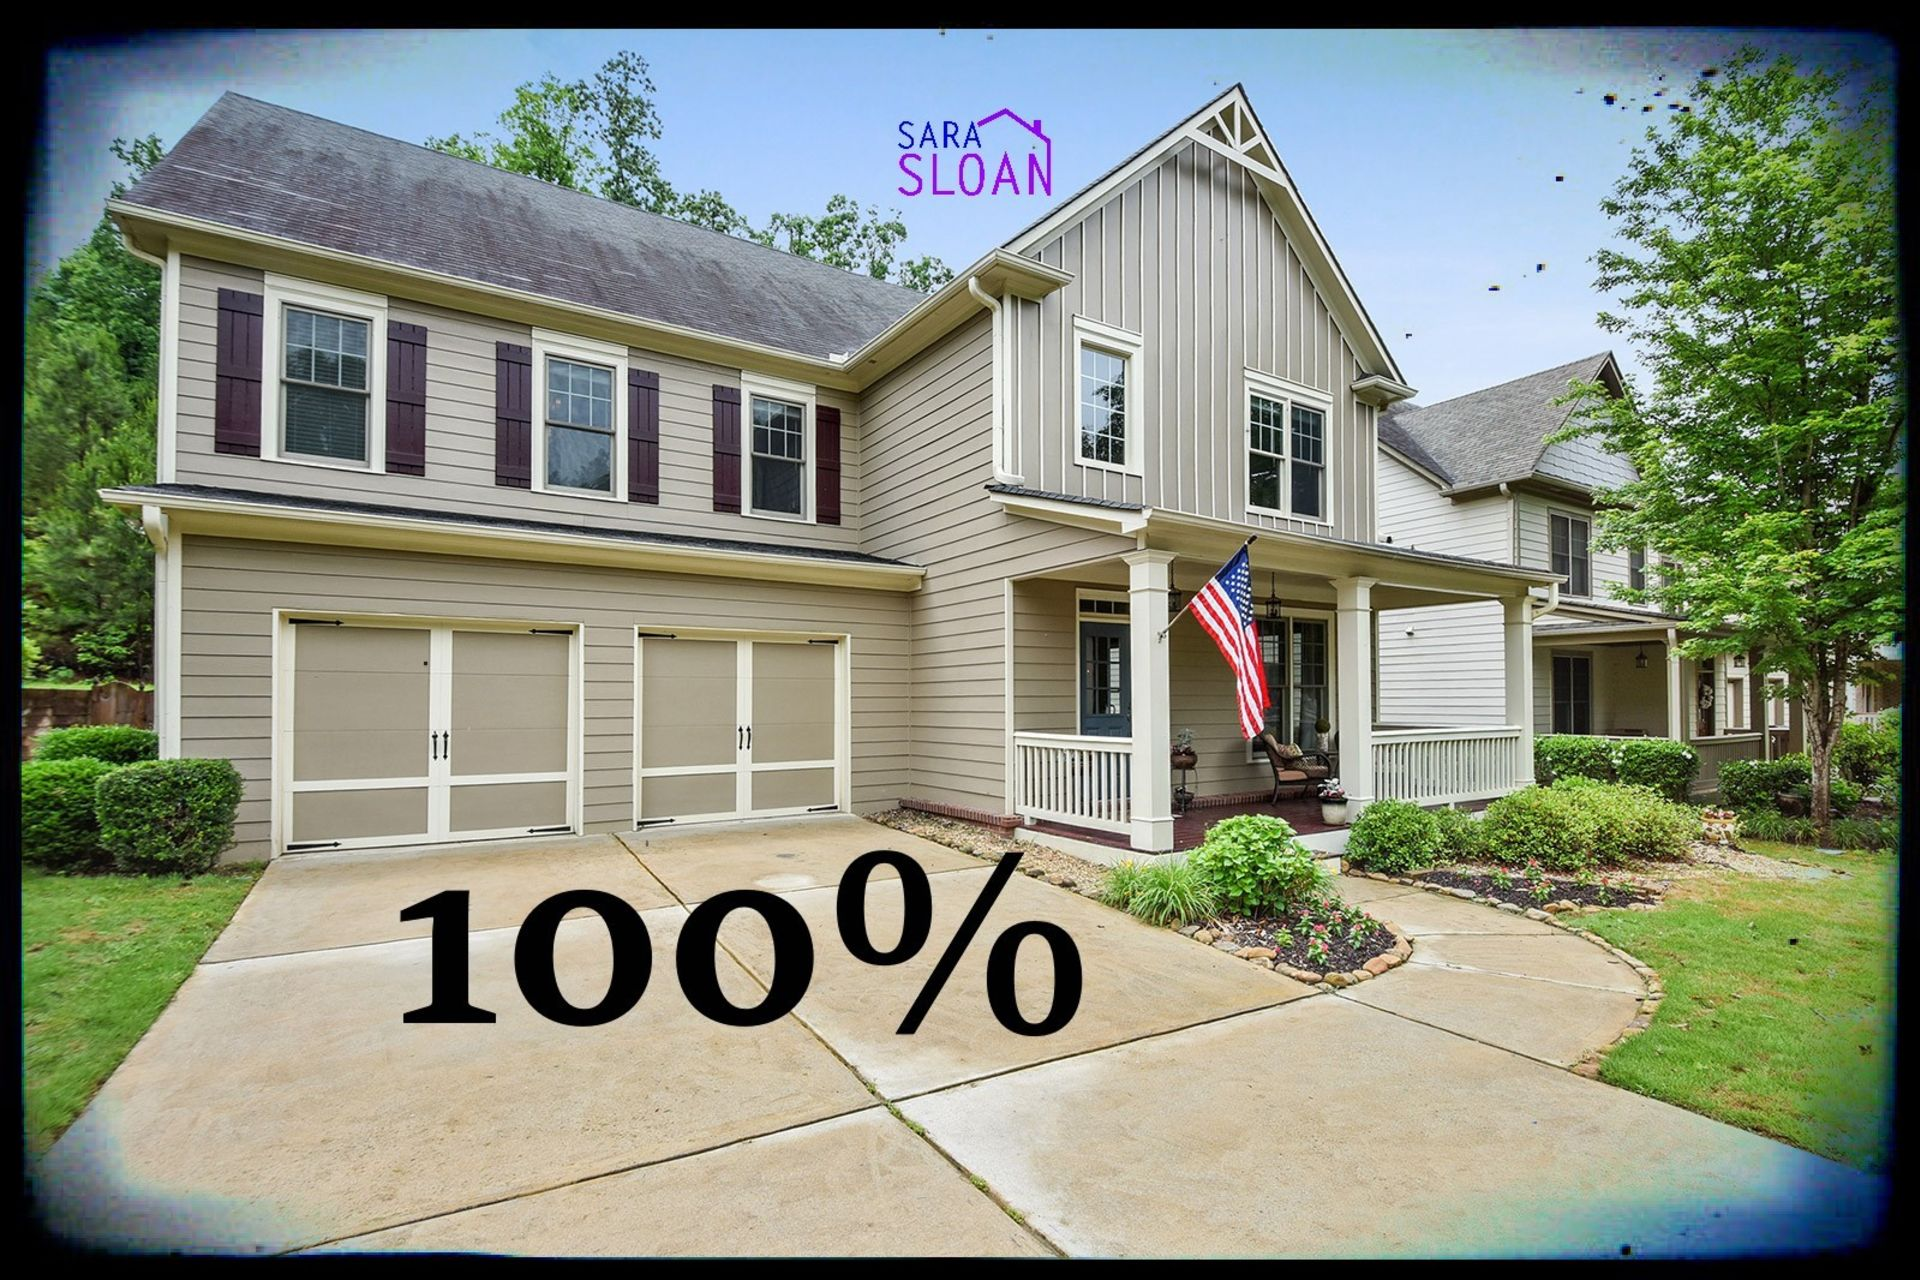 100% of asking price, SOLD in four days!